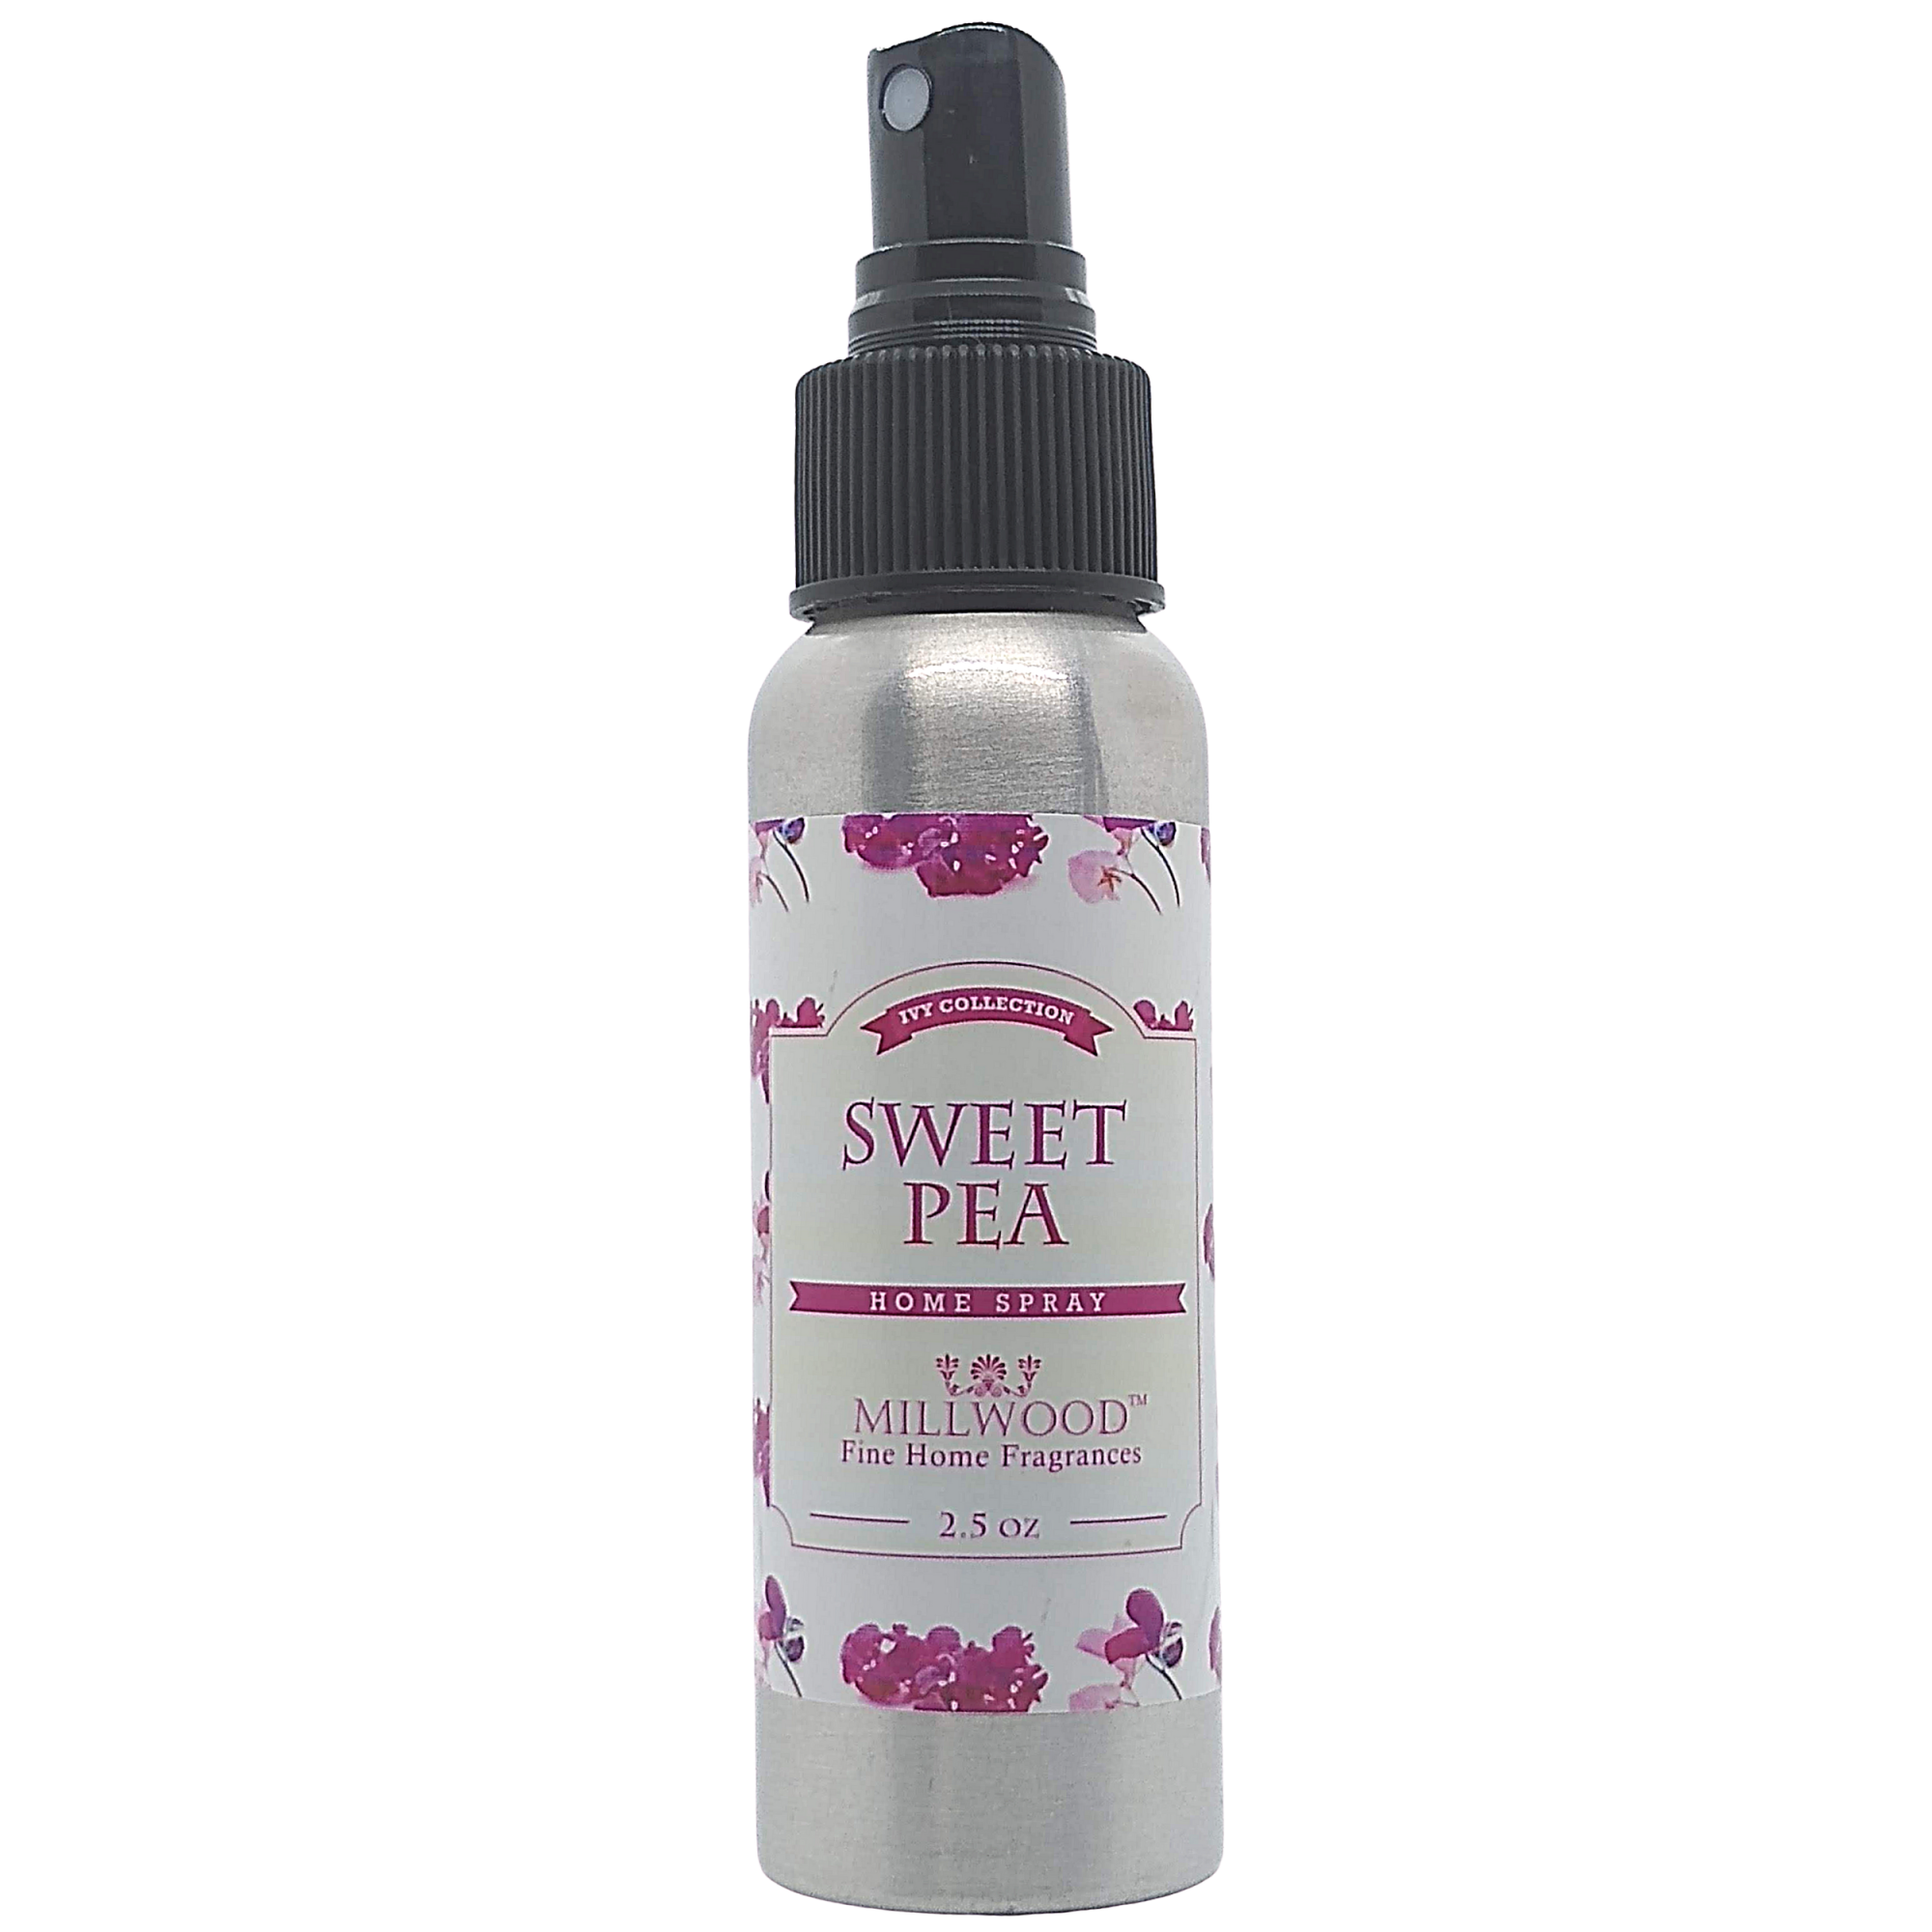 Sweet Pea Air Freshener 2021 Candle Scents and Air Freshener by Millwood Candles